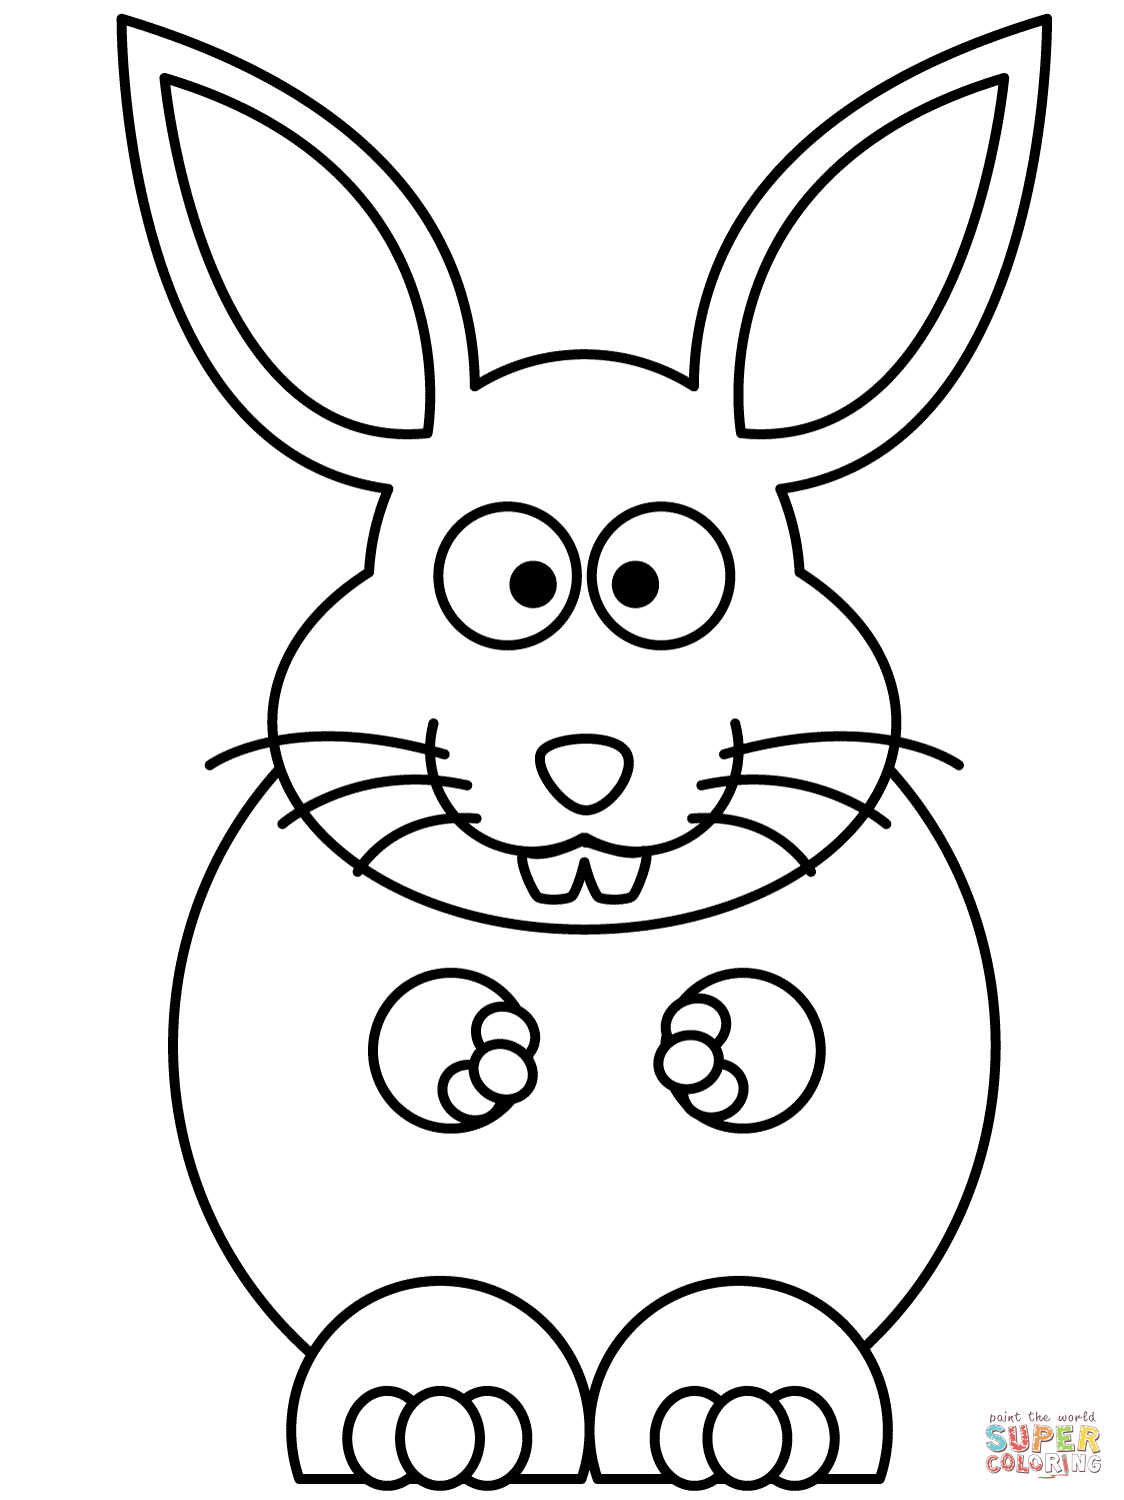 Cute Bunny Coloring Page Free Printable Coloring Pages